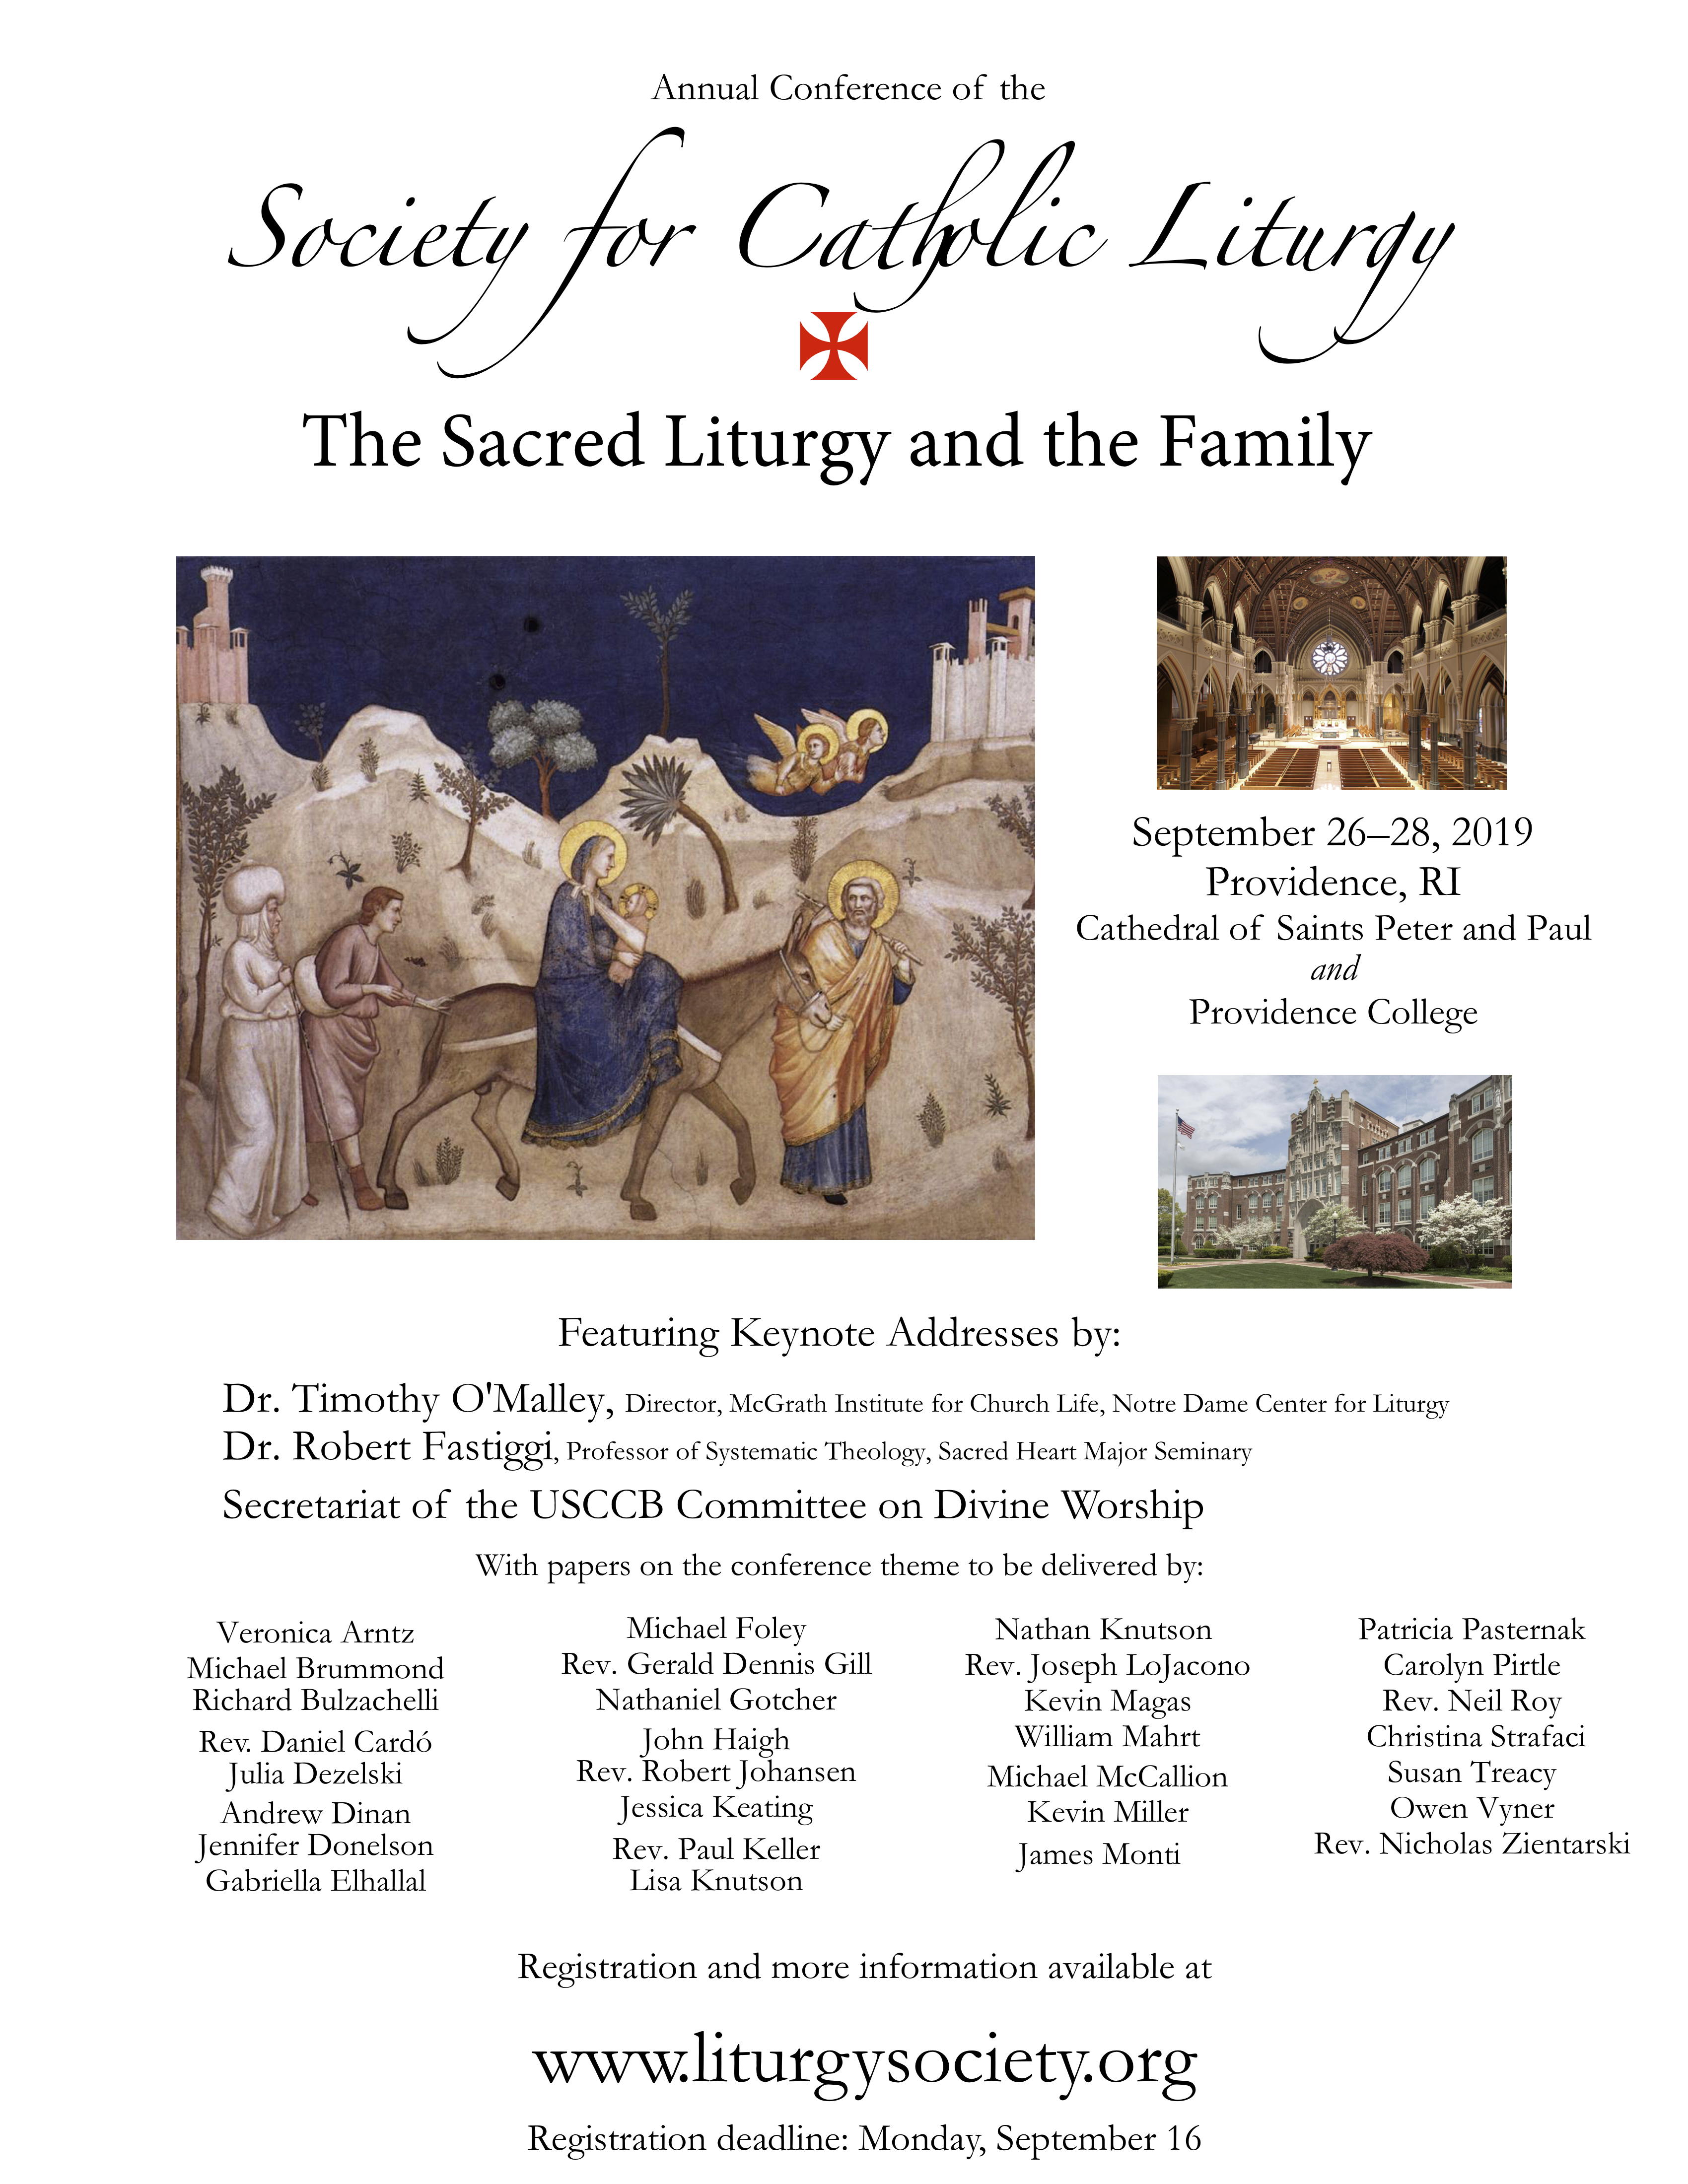 Annual Conference | Society for Catholic Liturgy